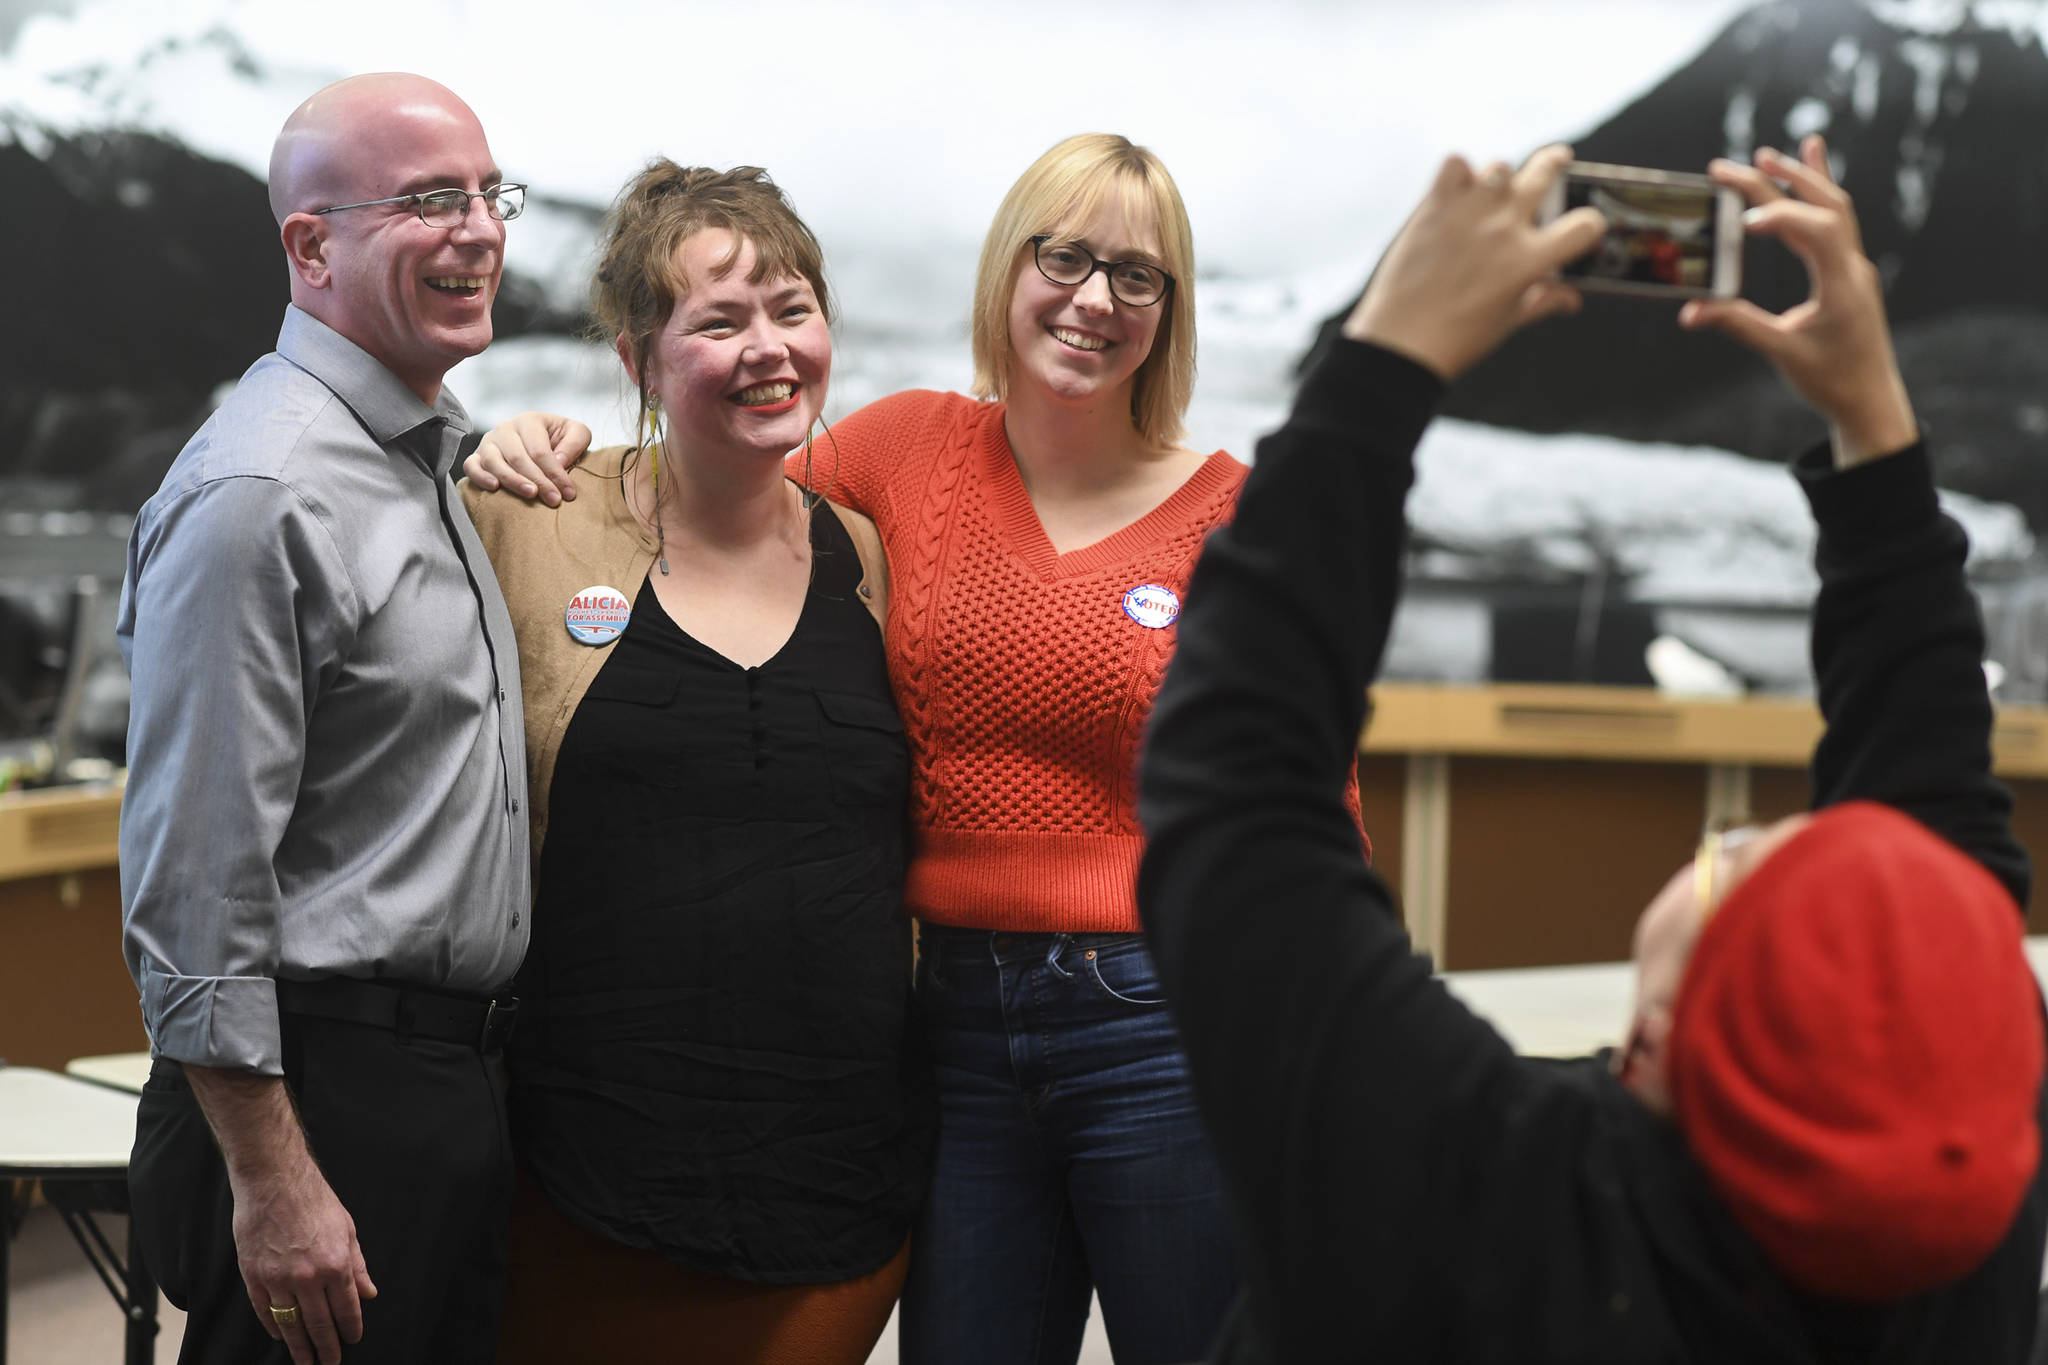 Kirsa Hughes-Skandijs takes a picture of her sister, Alicia Hughes-Skandijs, center, with Wade Bryson and Carole Triem as results come in at City Hall on Tuesday, Oct. 1, 2019. (Michael Penn | Juneau Empire)